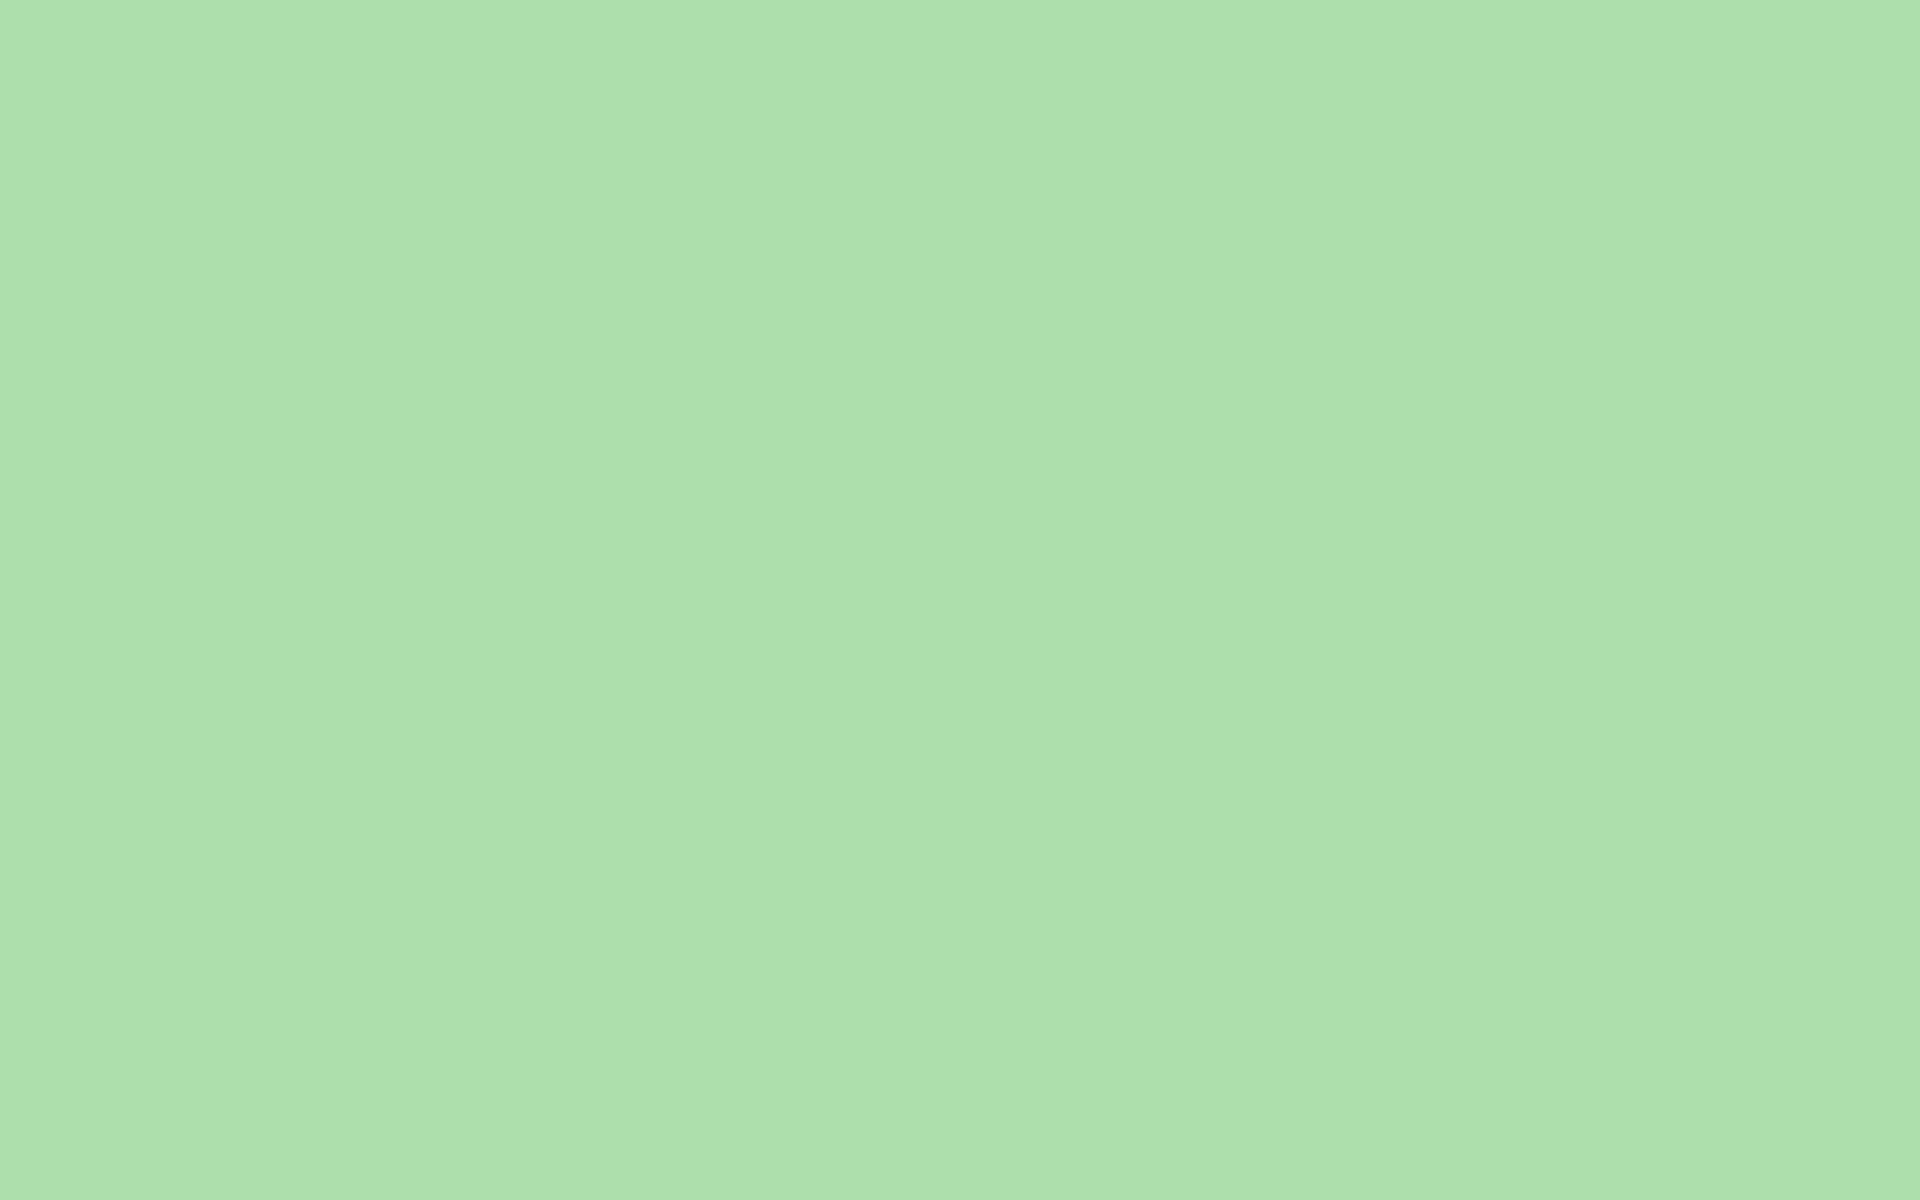 1920x1200 - Solid Green 33